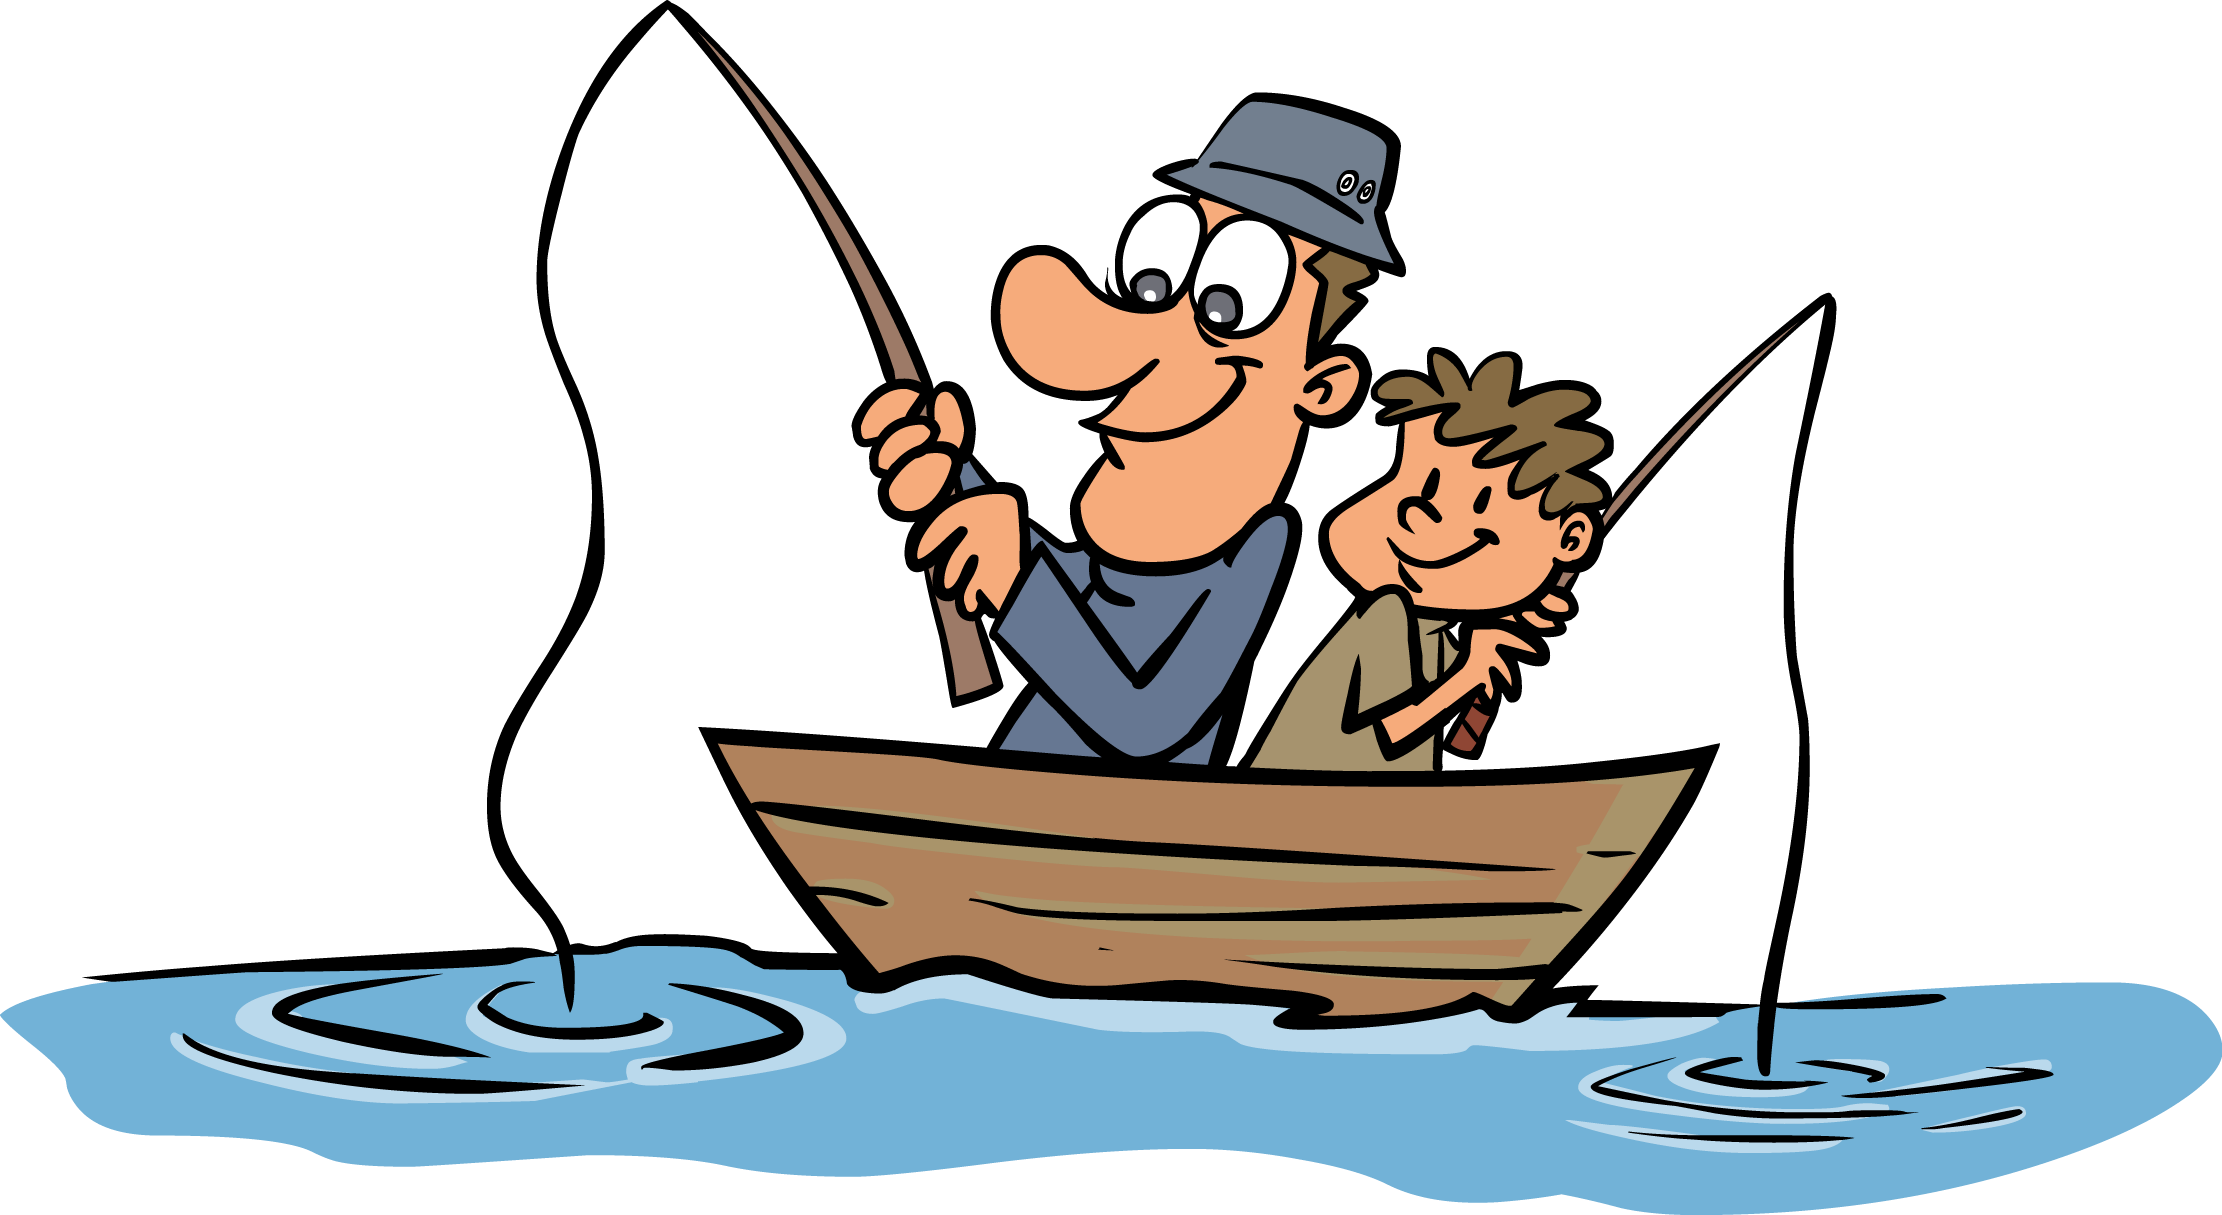 Hunting clipart fishing boat.  collection of fisherman